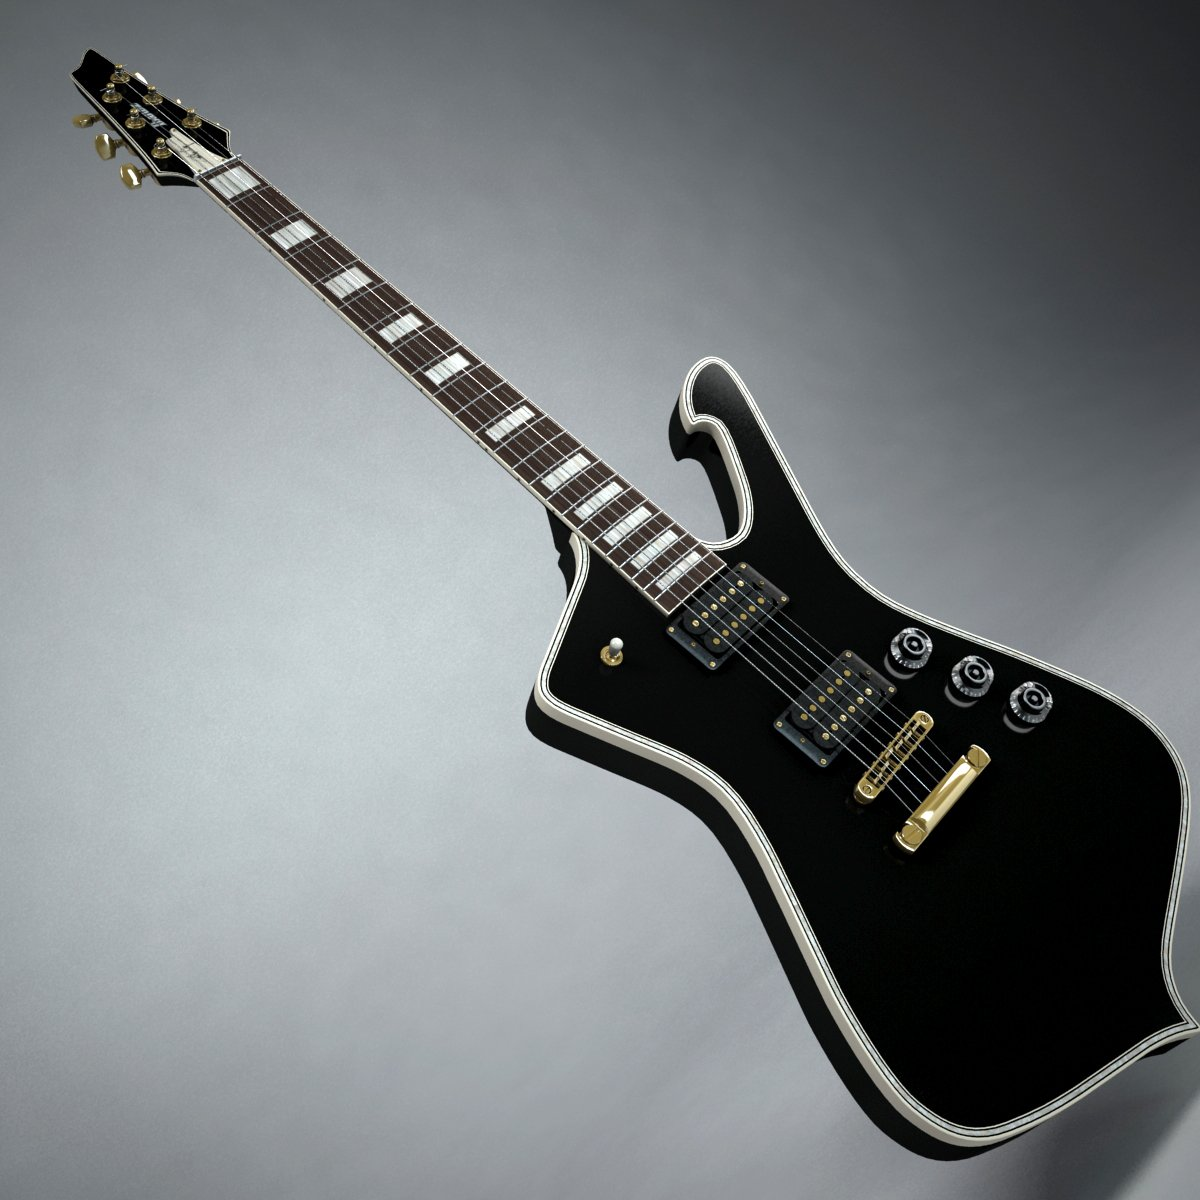 Ibanez IceMan Paul Stanley Guitar 3D Model in Guitar 3DExport